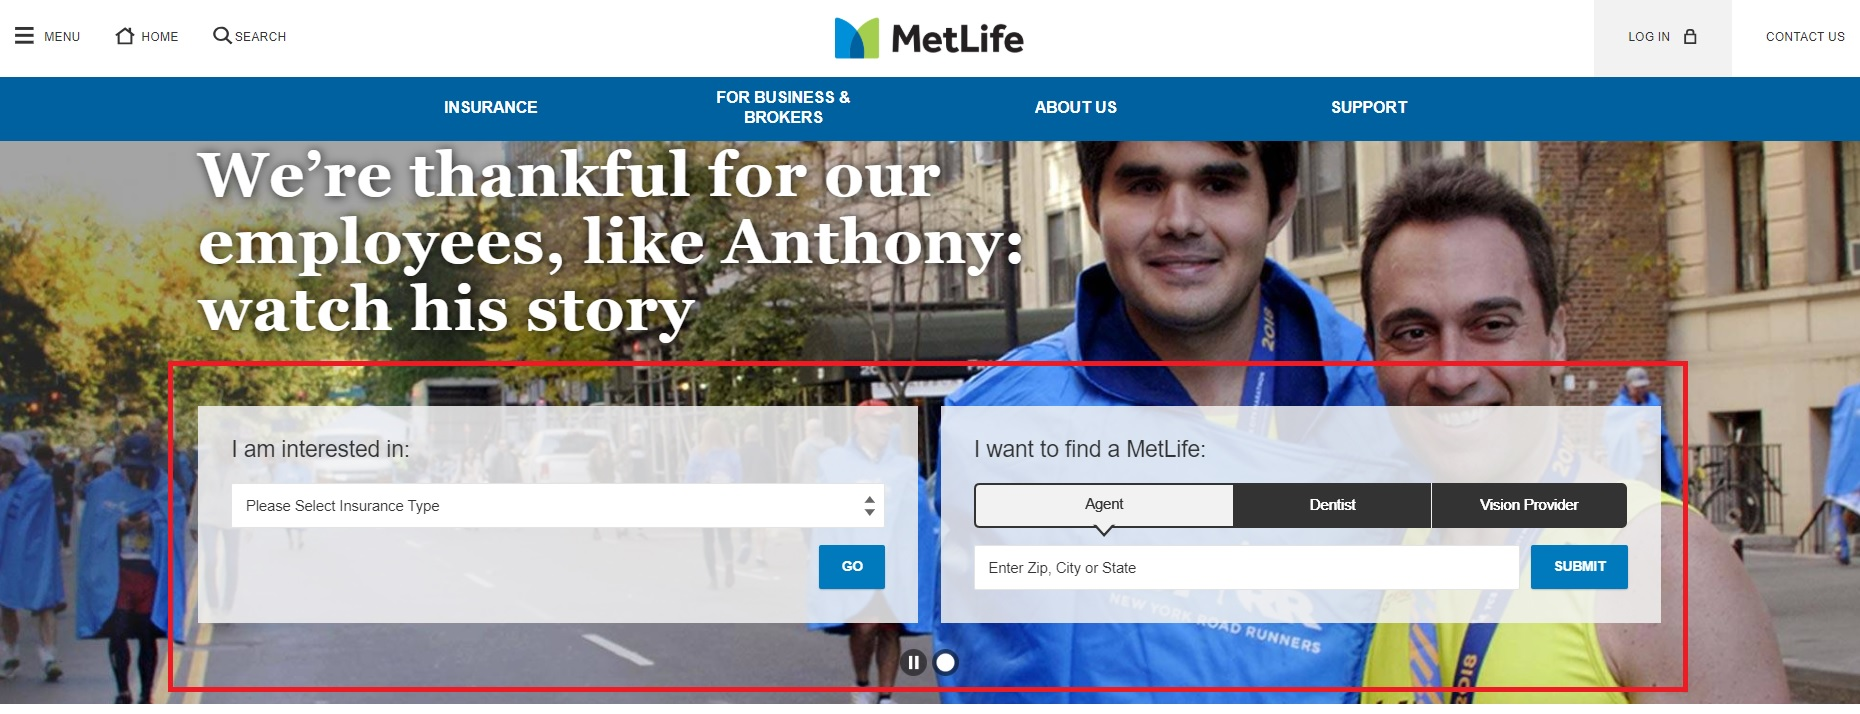 How to get a MetLife Insurance Quote